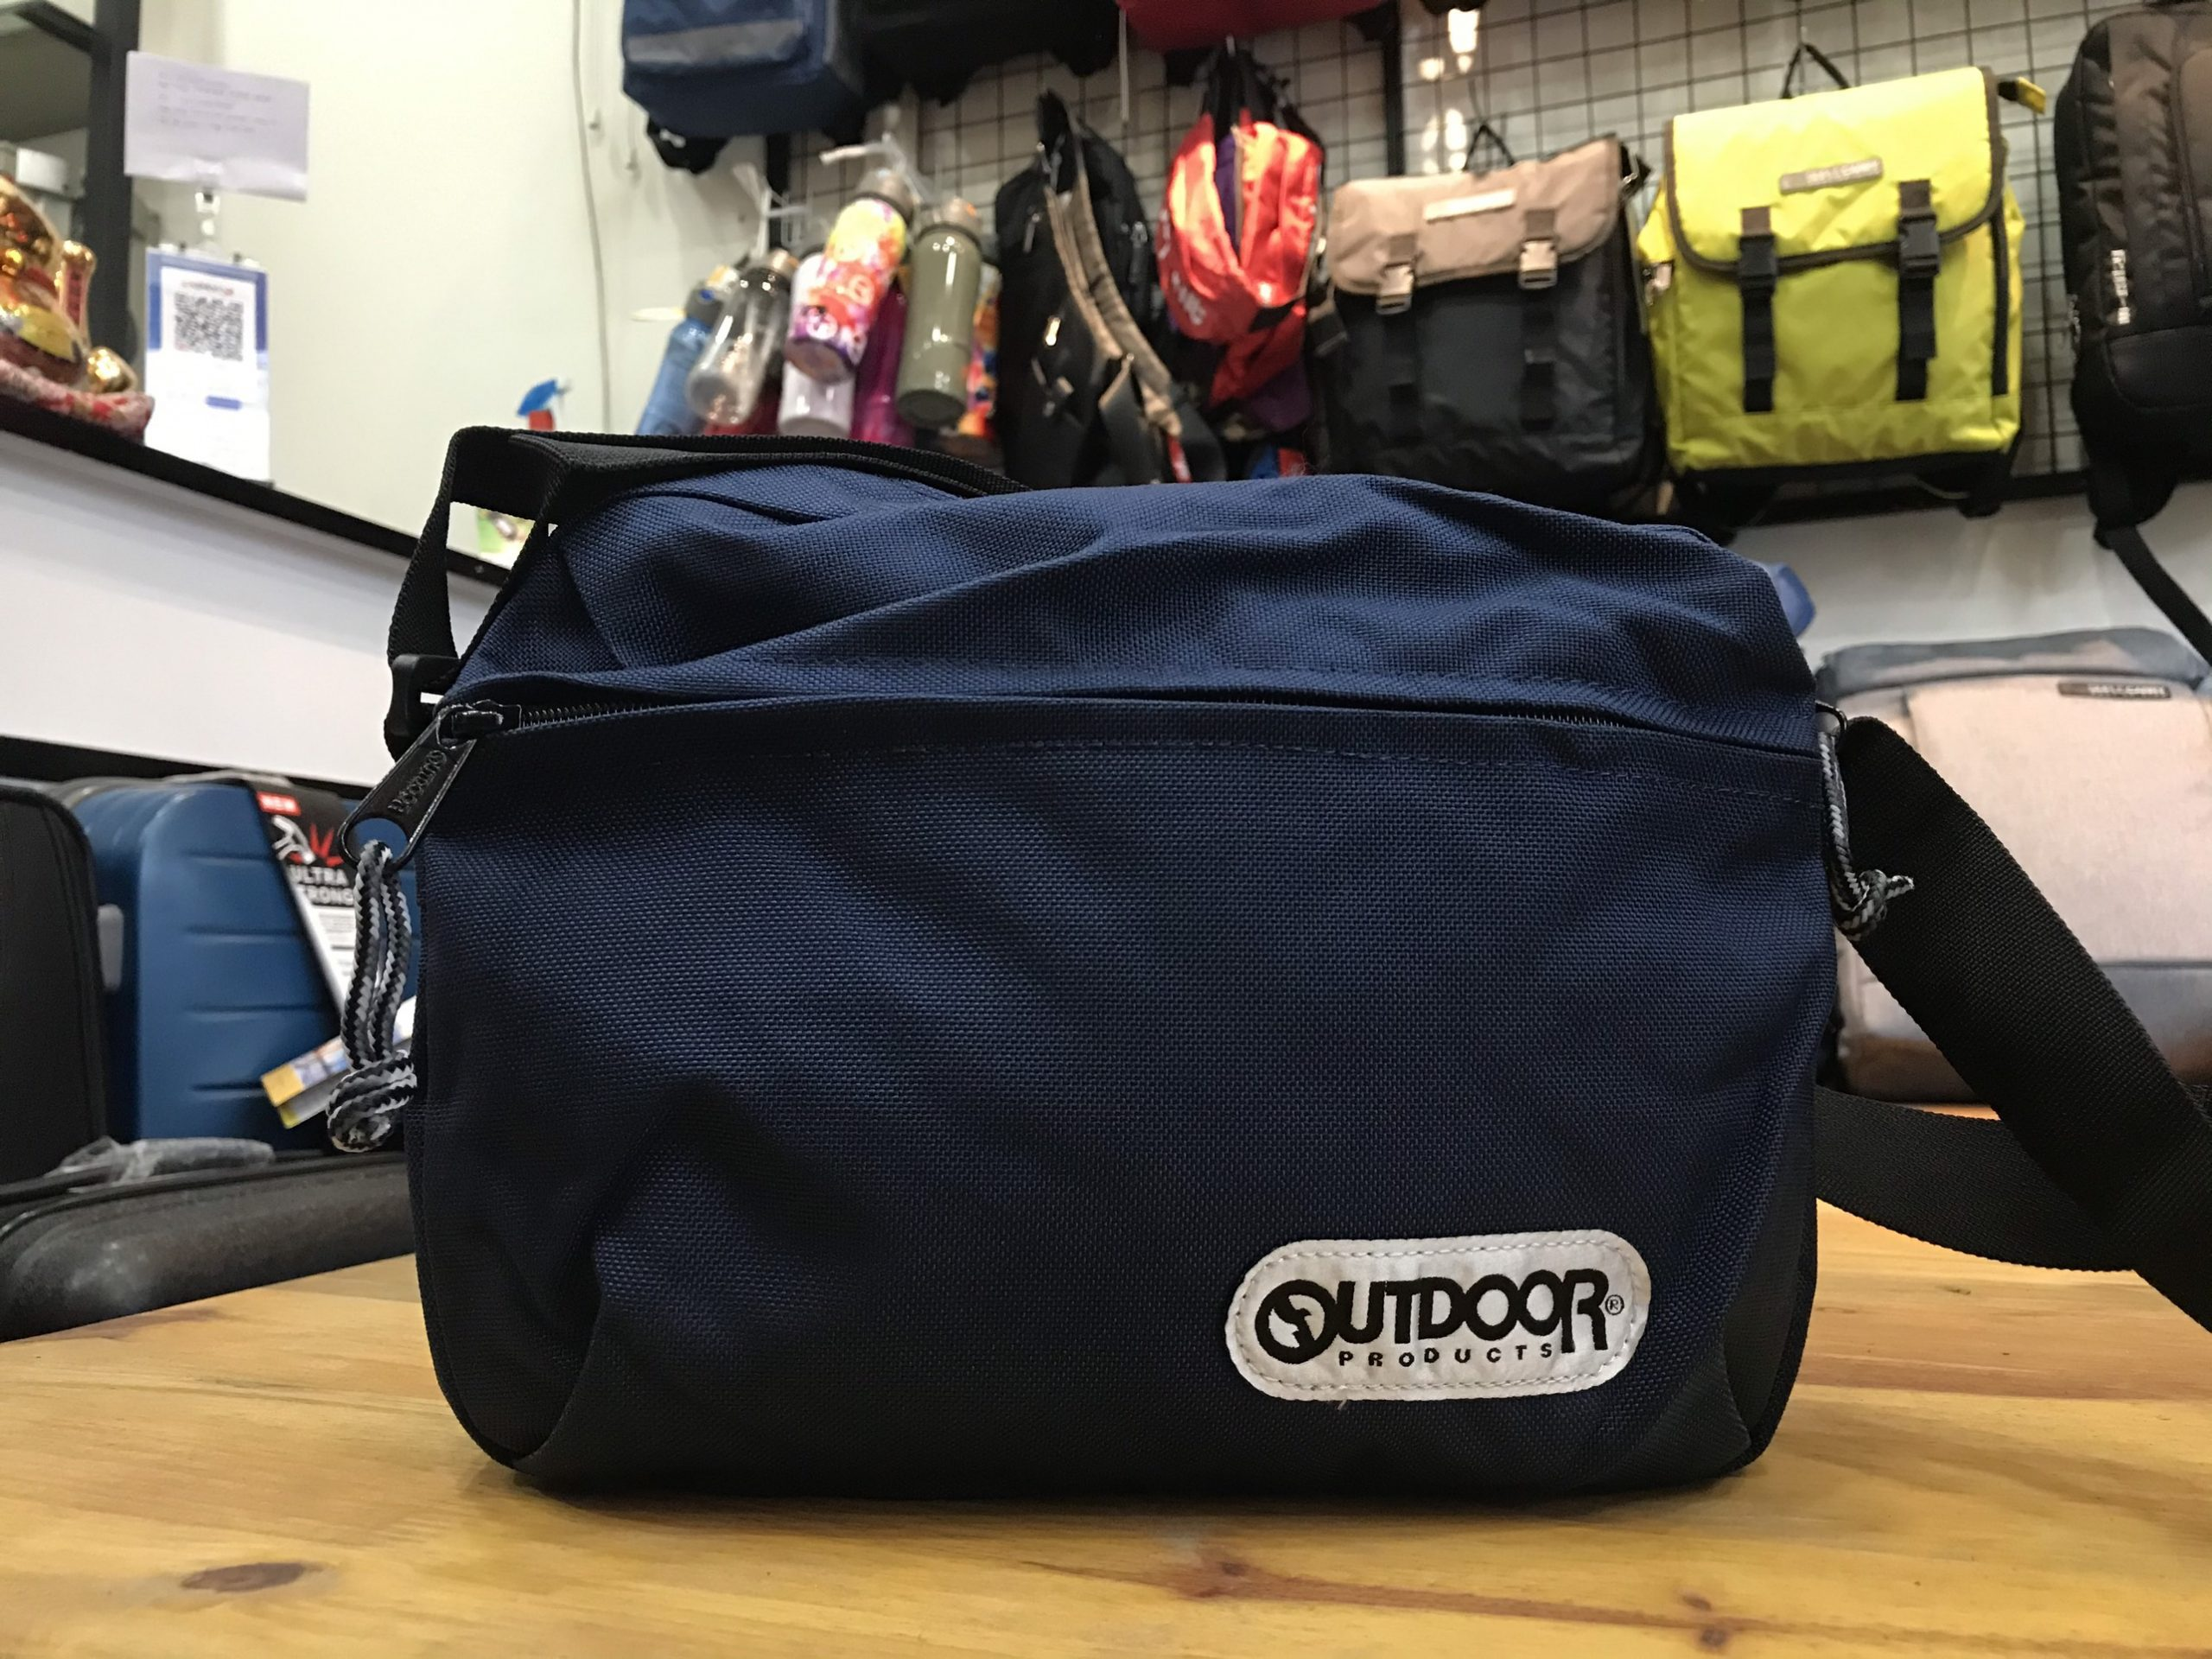 outdoor horizontal mini shoulder bag